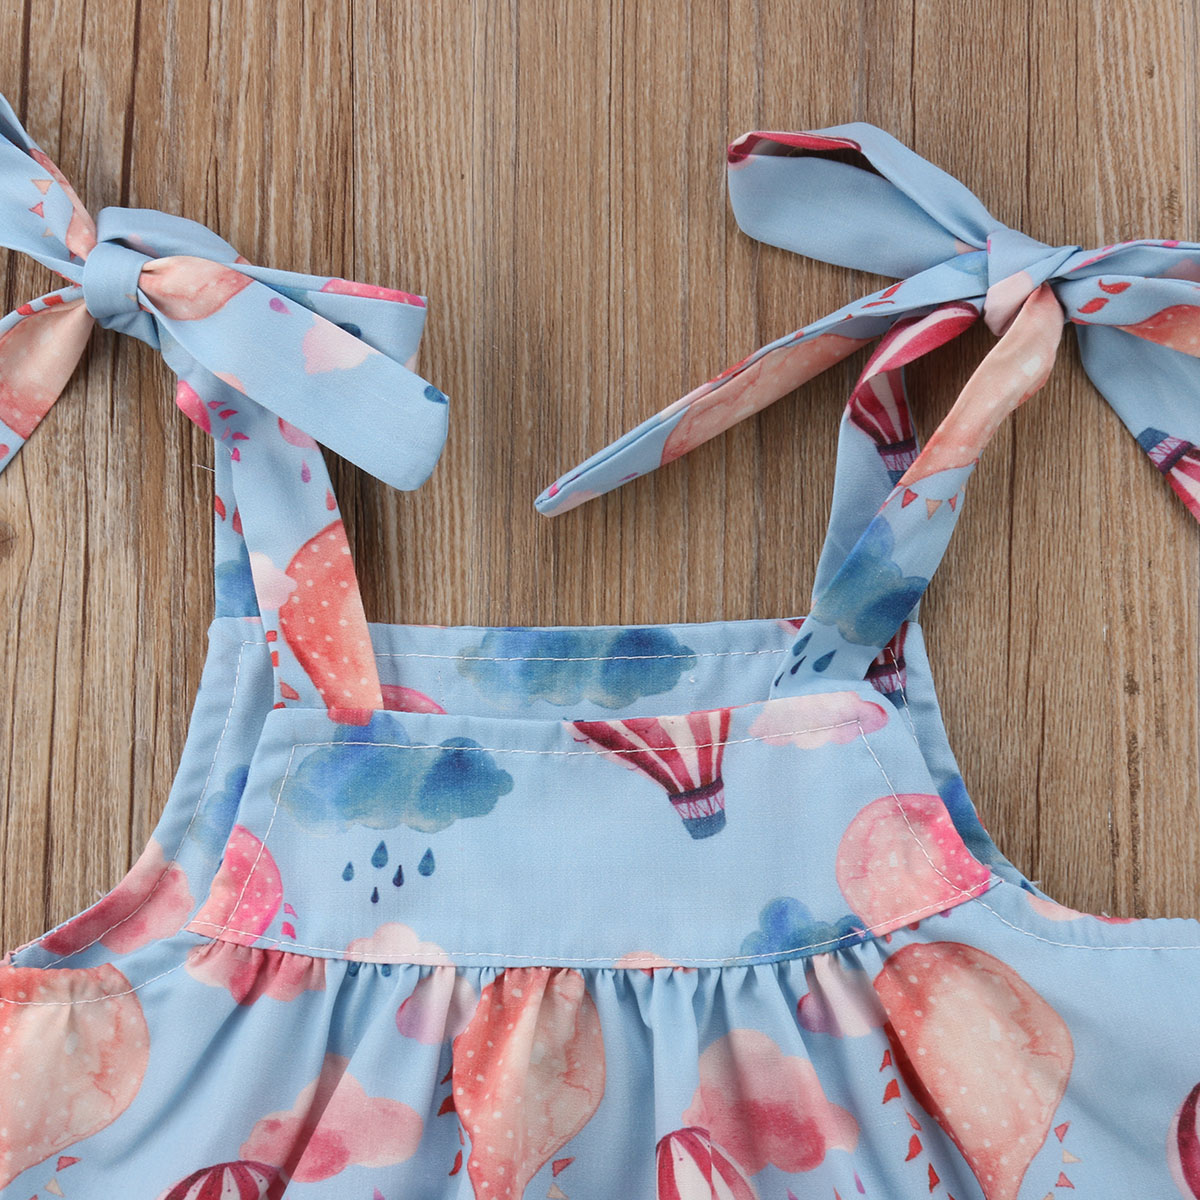 Newborn Infant Baby Girl Suspender Skirt Tops+Shorts PP Bloomers Panties Clothes 2018 Summer Clothes 0-24M